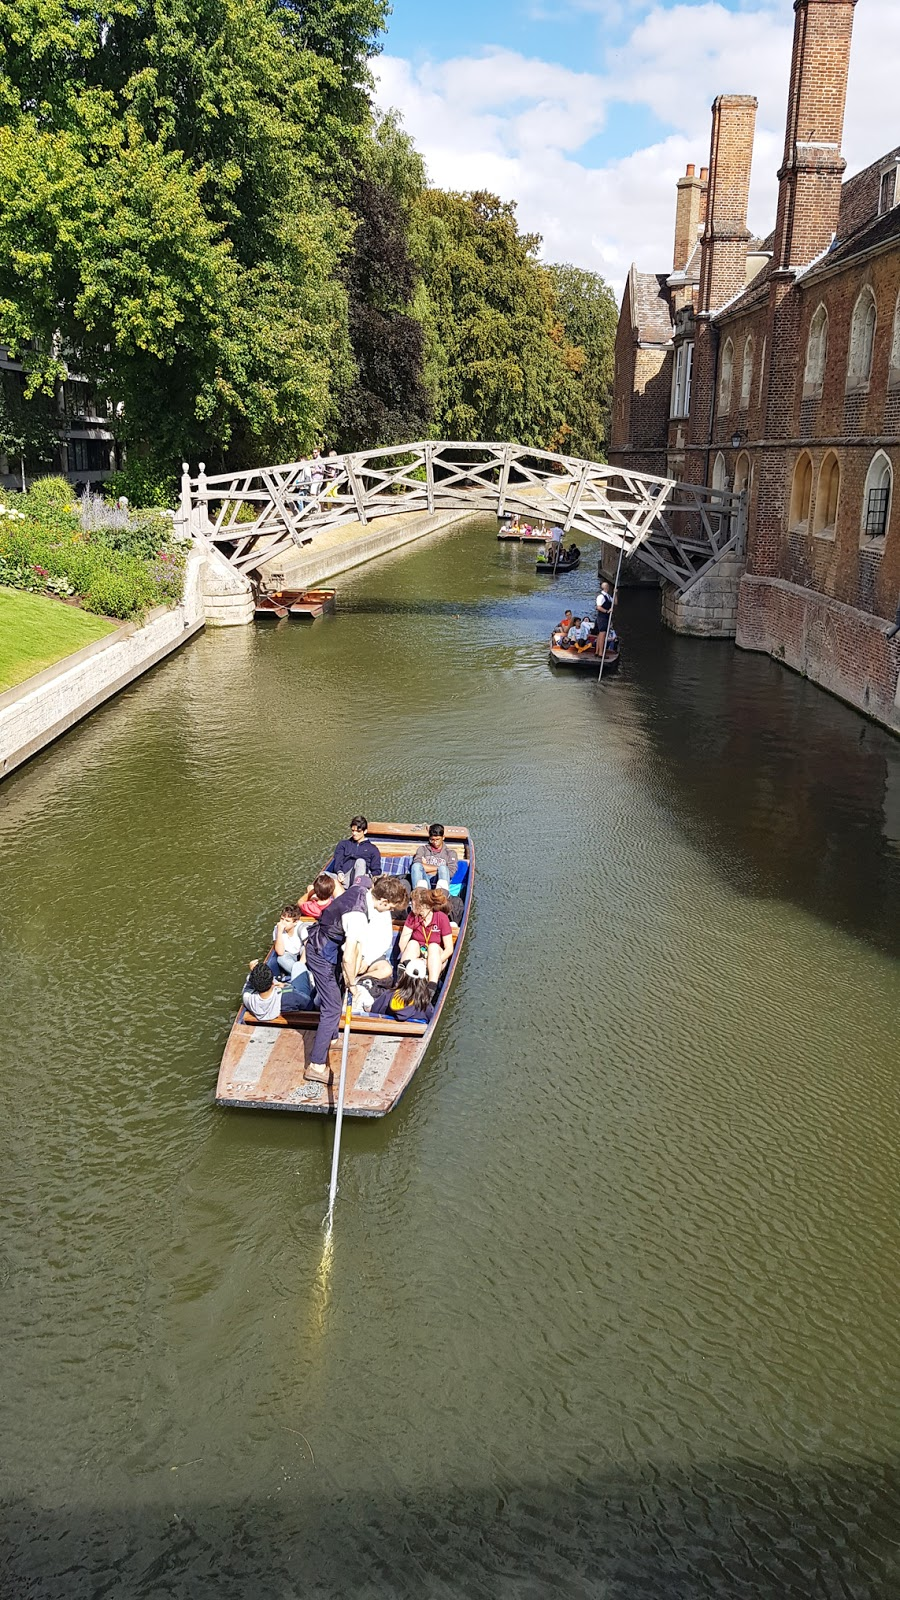 Tourists on a boat in Cambridge